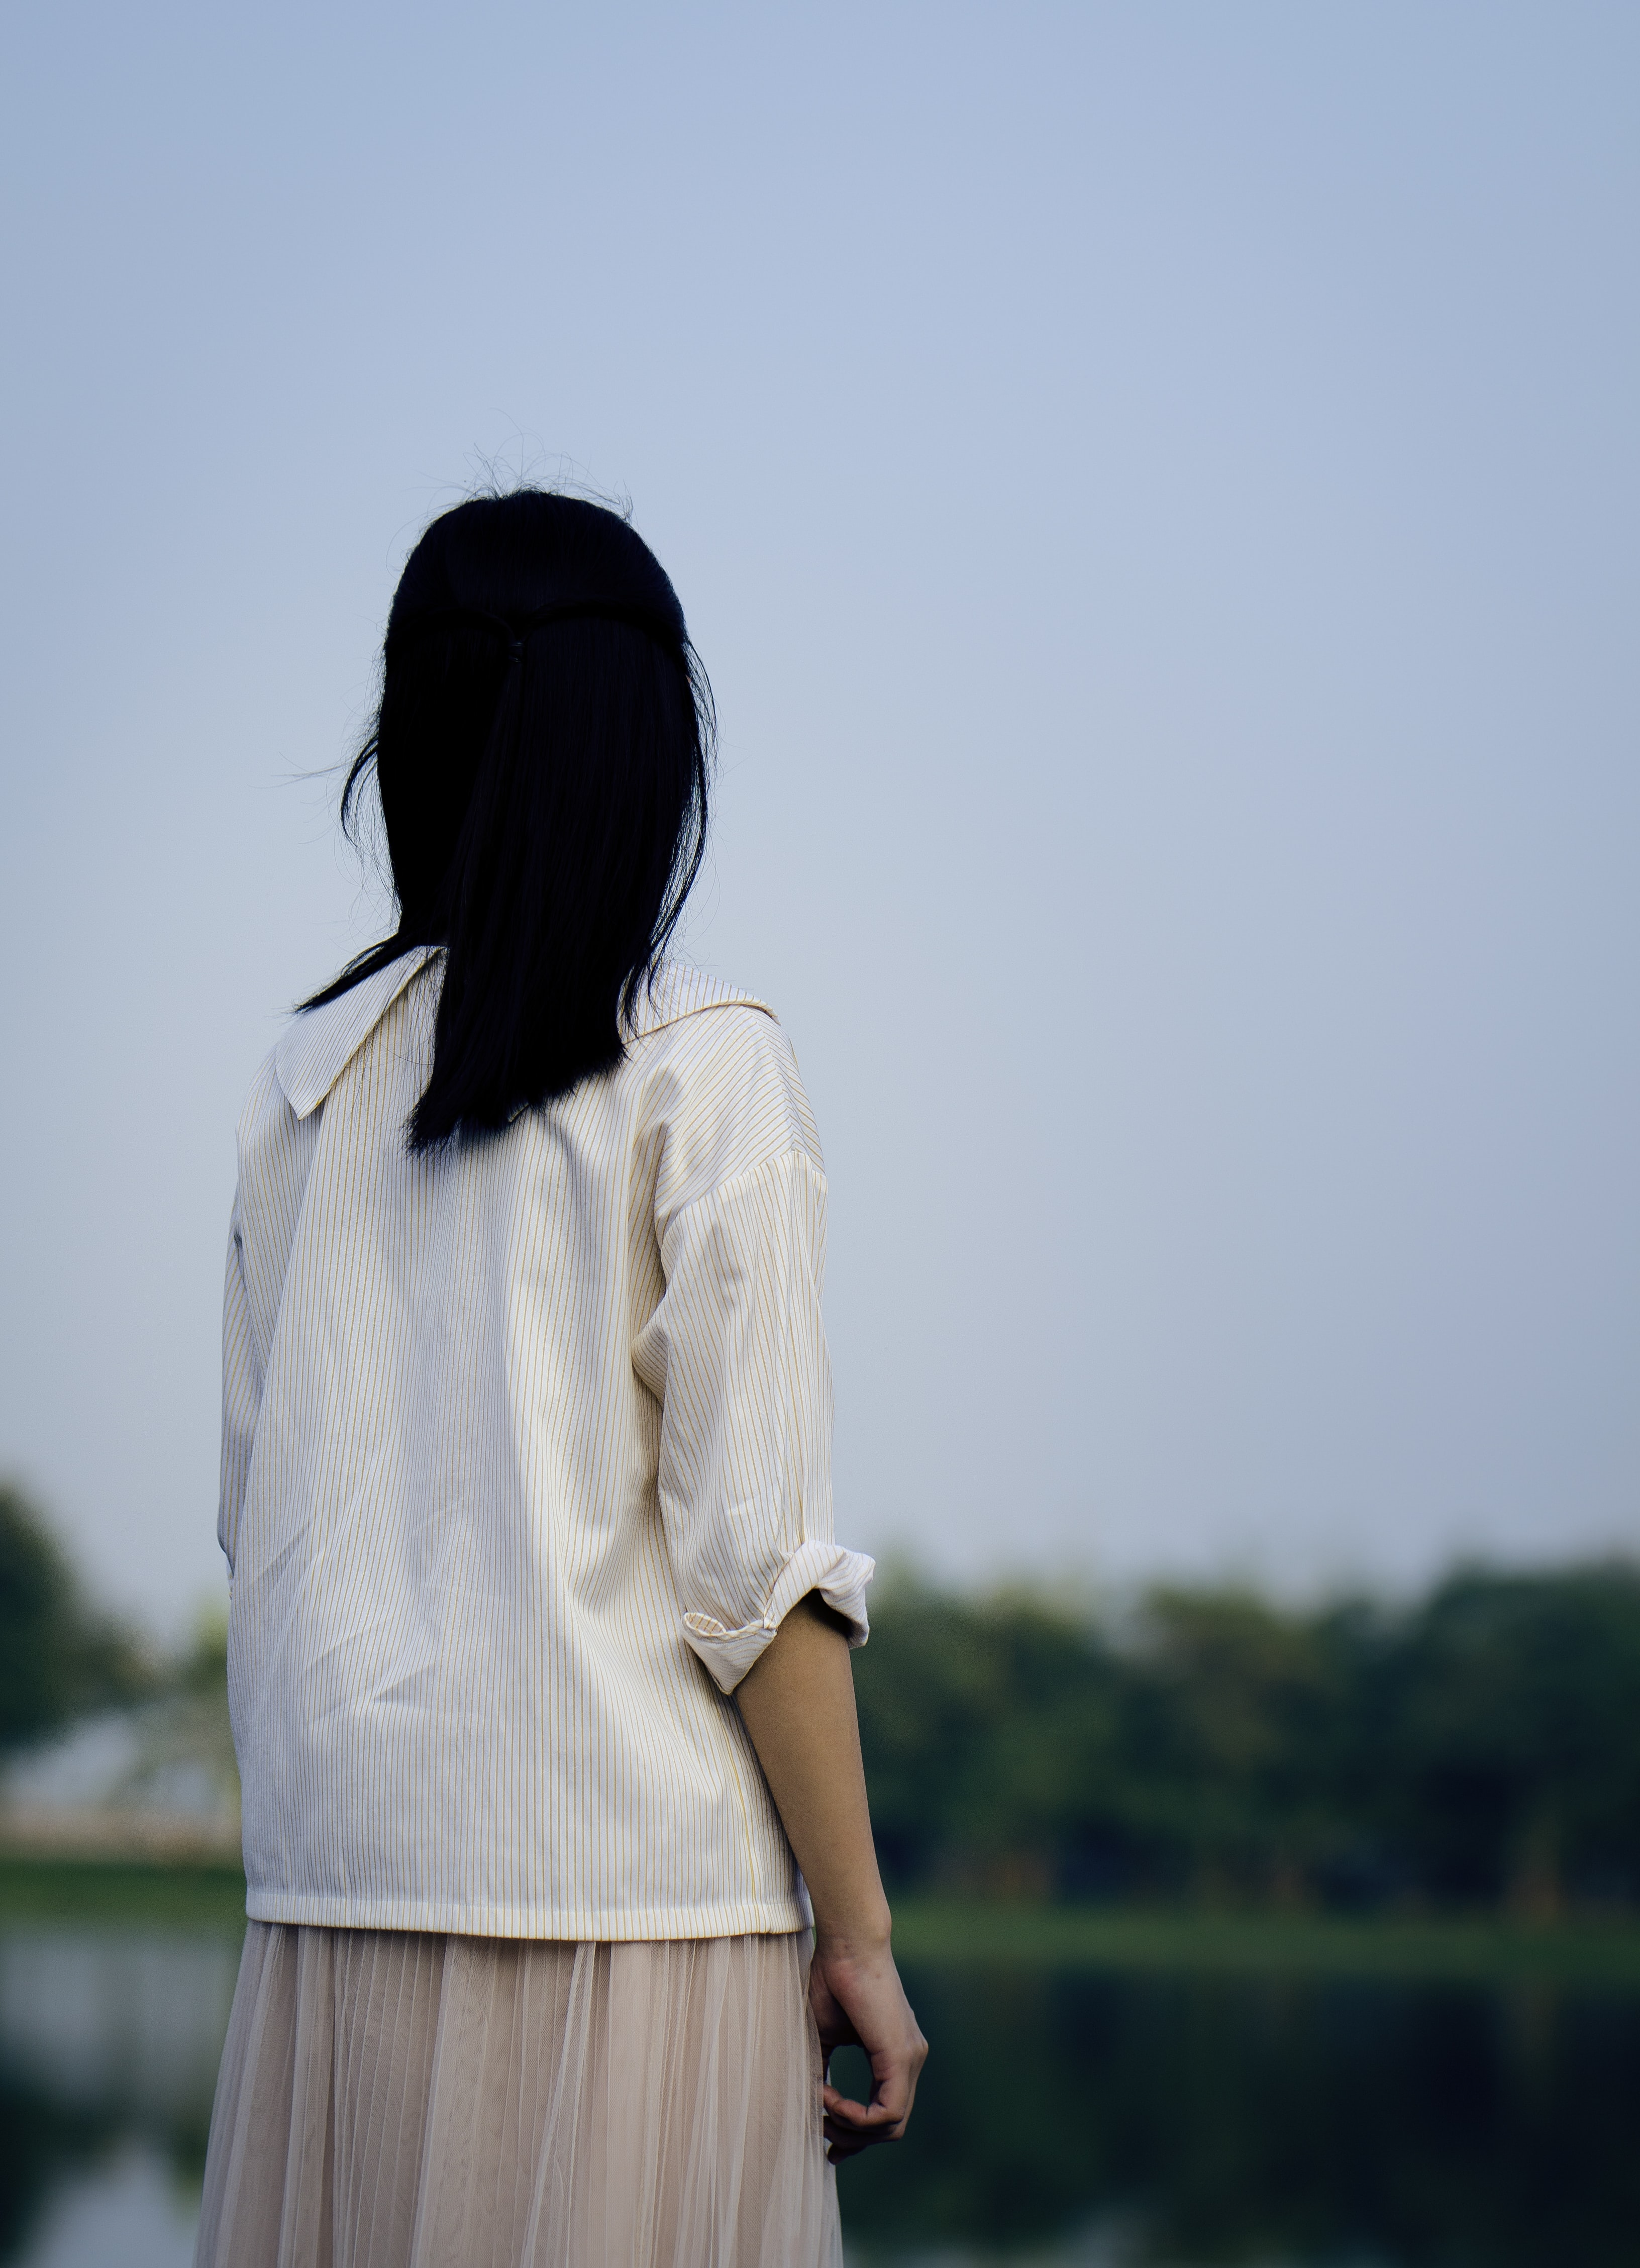 woman wearing white shirt standing under blue sky during daytime photography